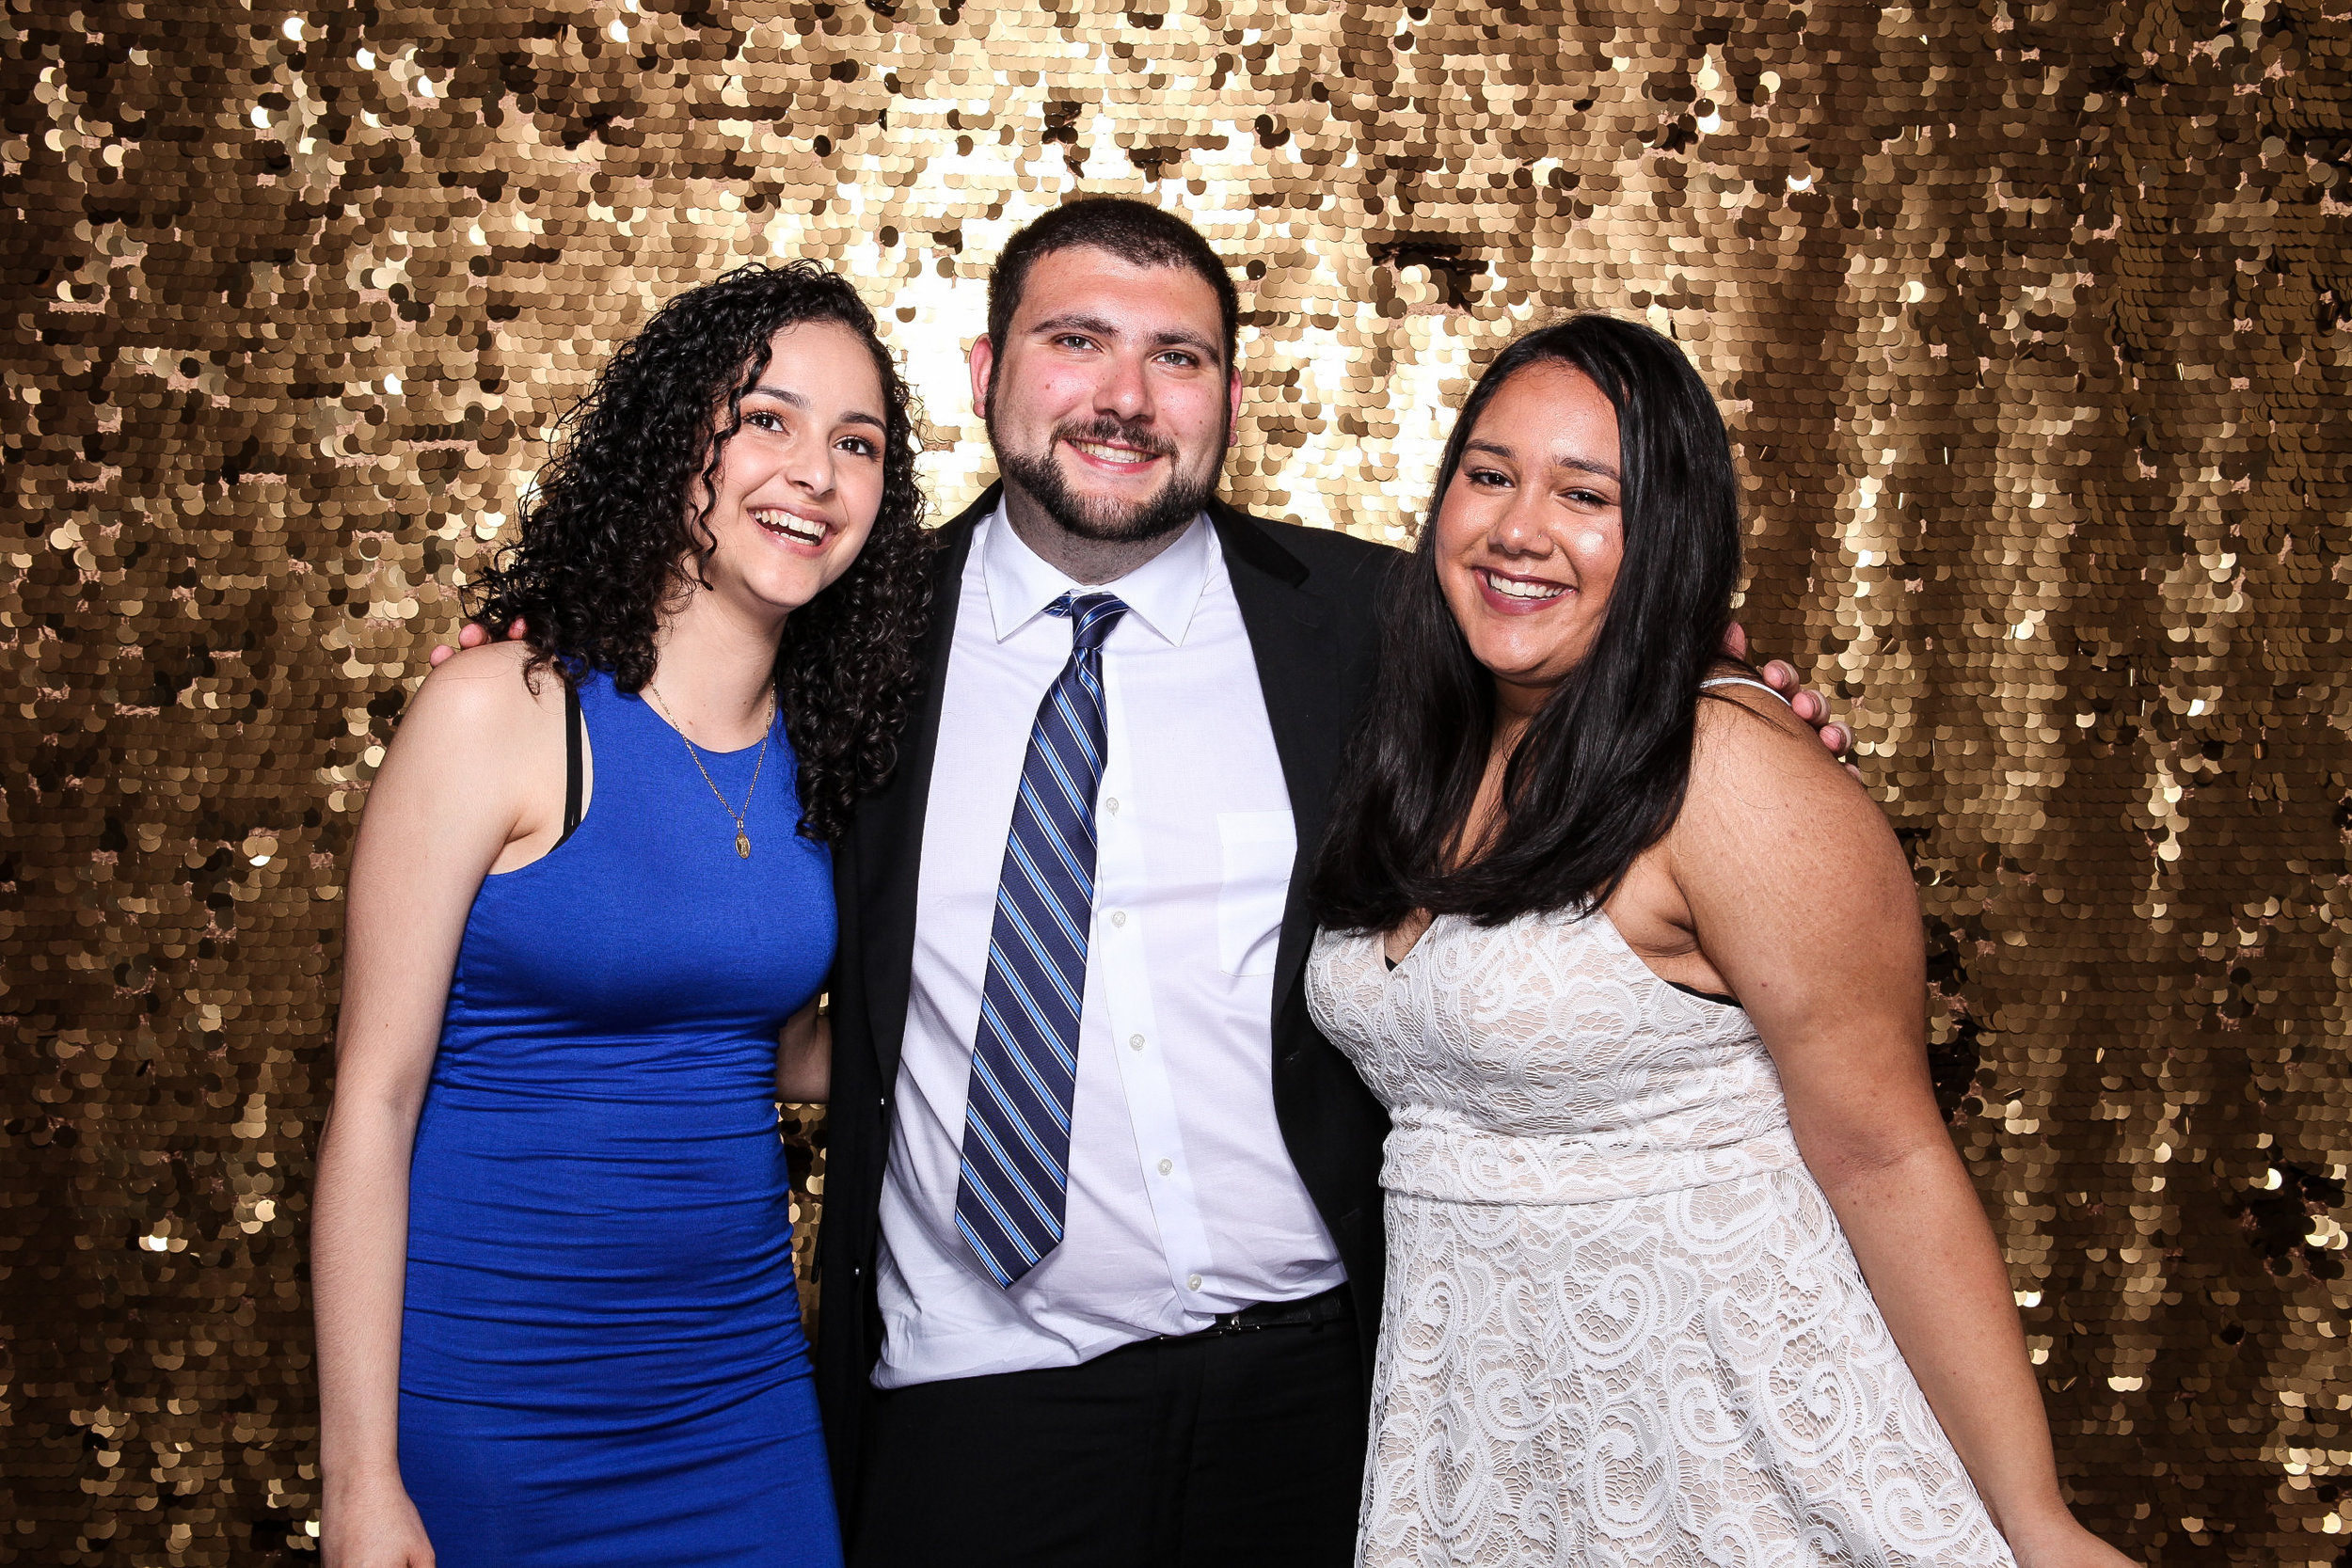 20190503_Adelphi_Senior_Formal-388.jpg